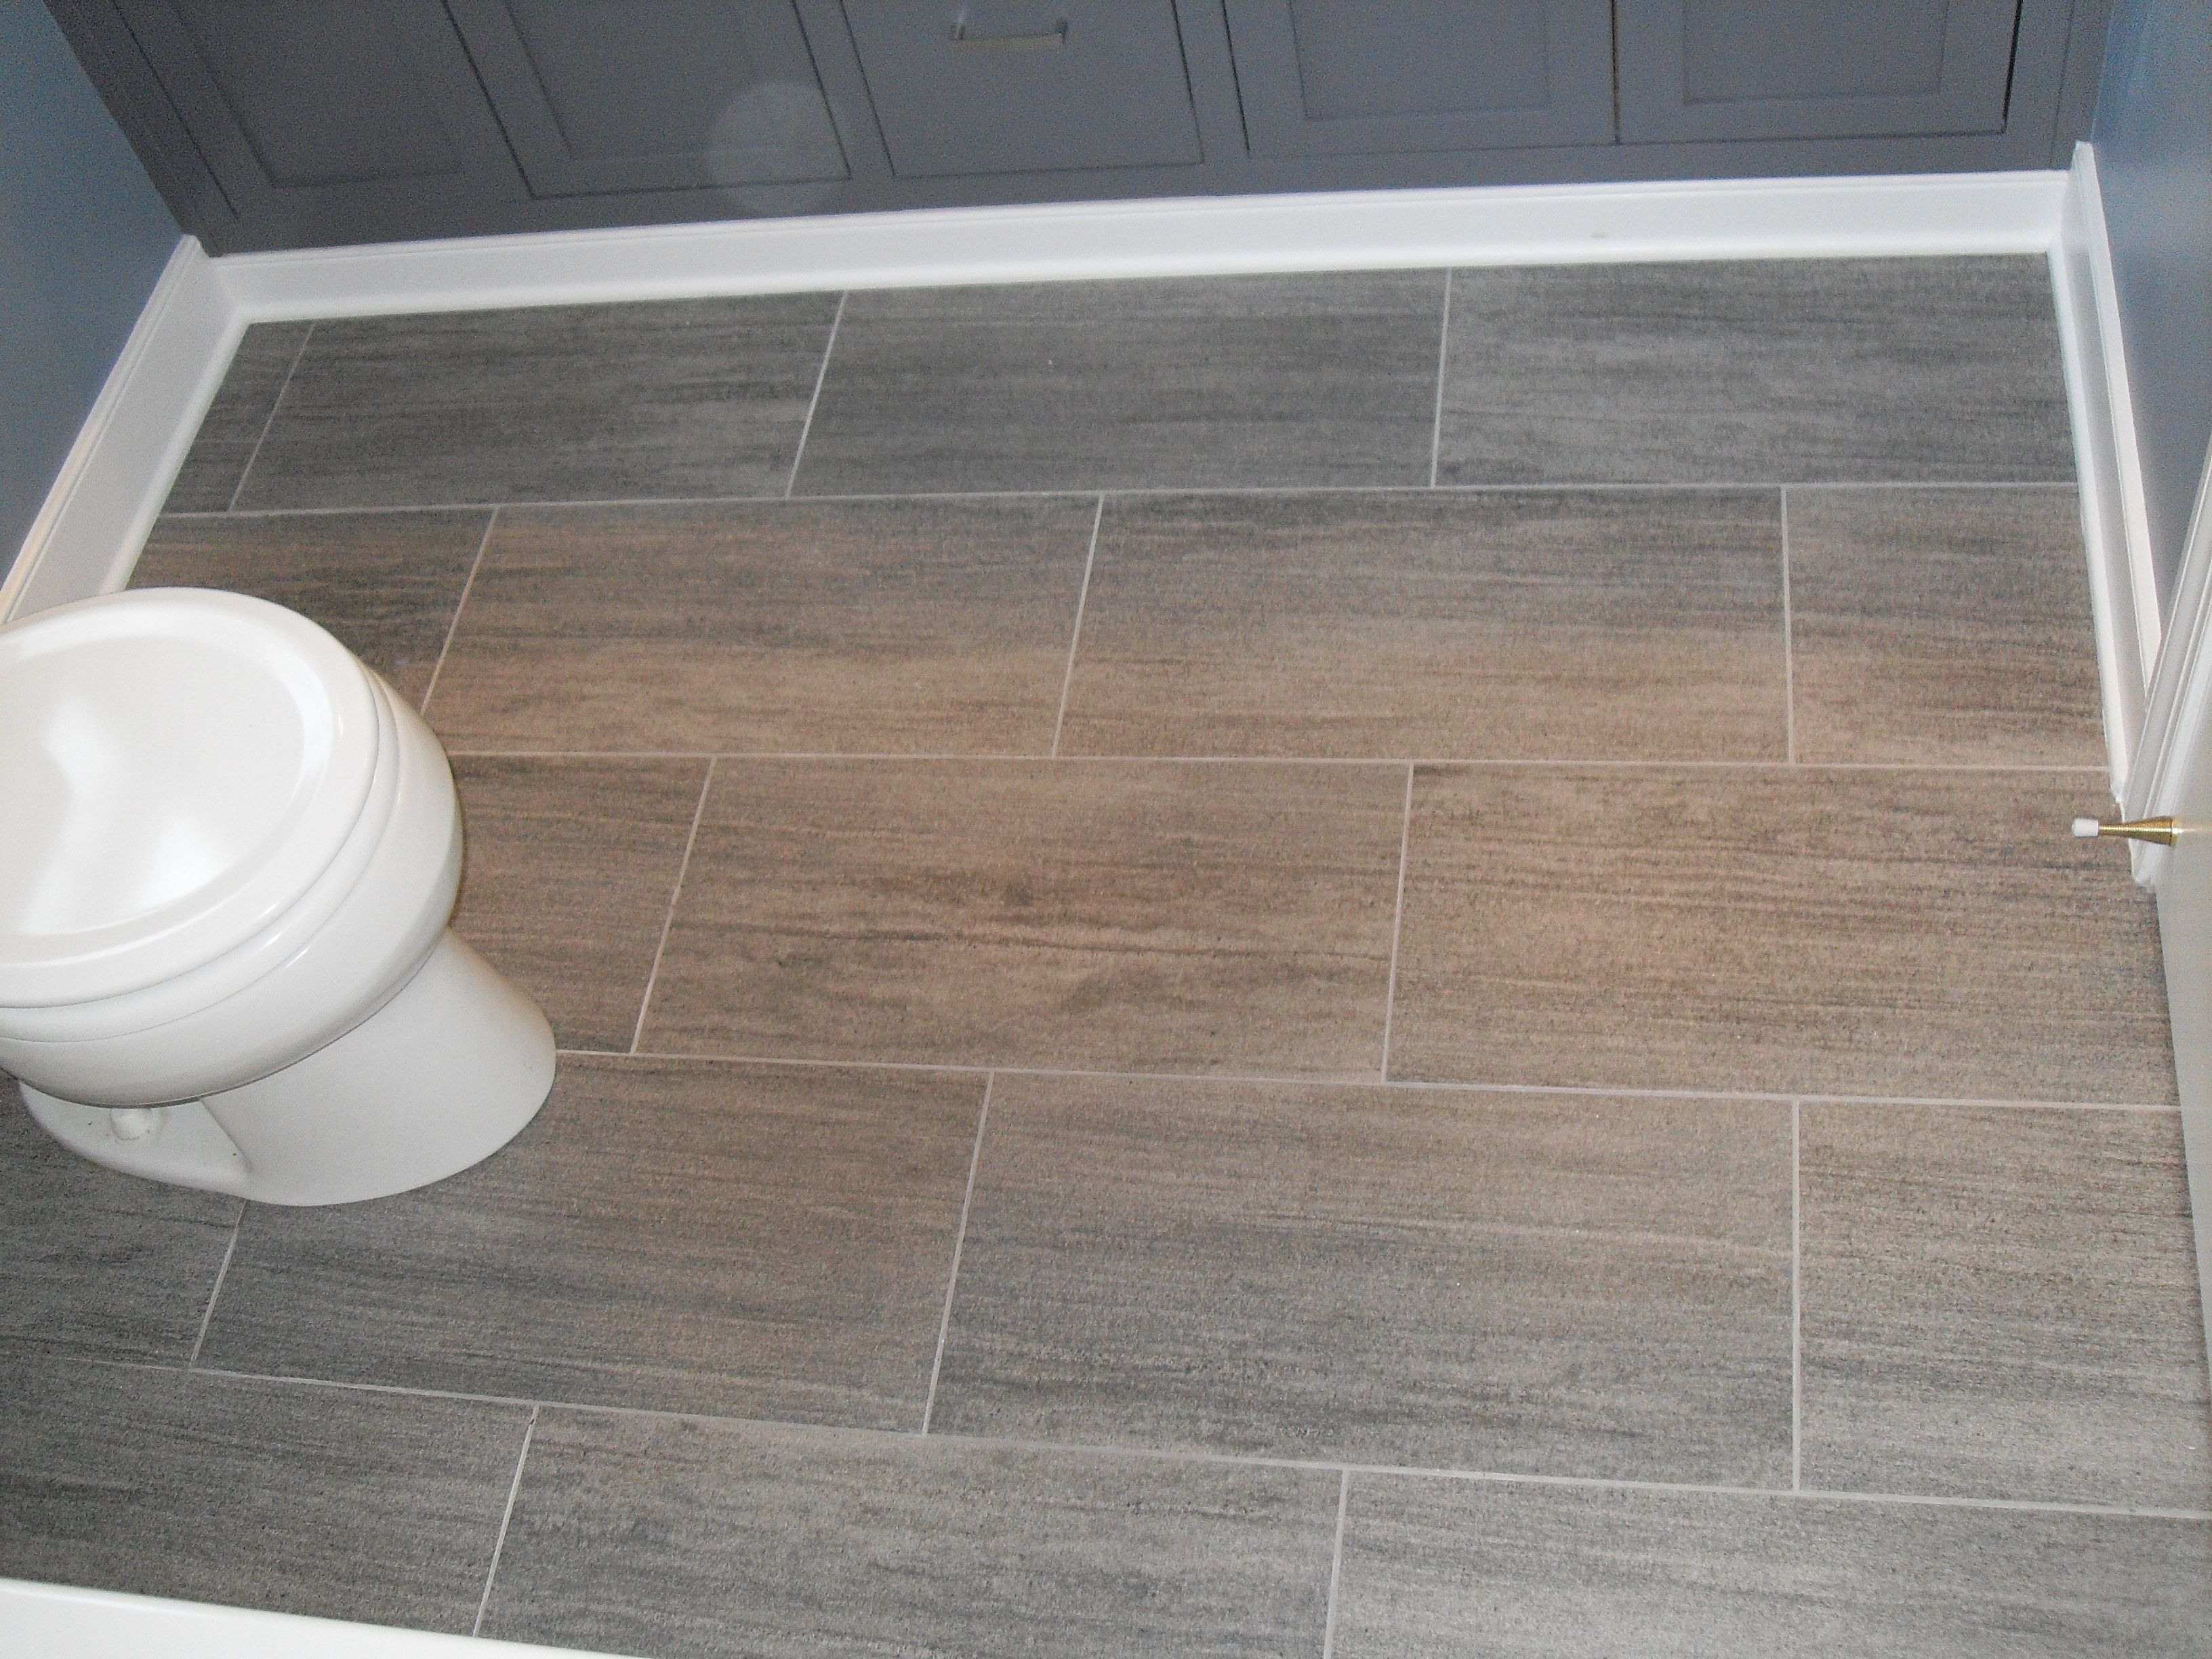 Epic Easy To Keep Clean, Similar To Drift Wood In Tone, Large Tile For intended for Easy To Install Bathroom Flooring